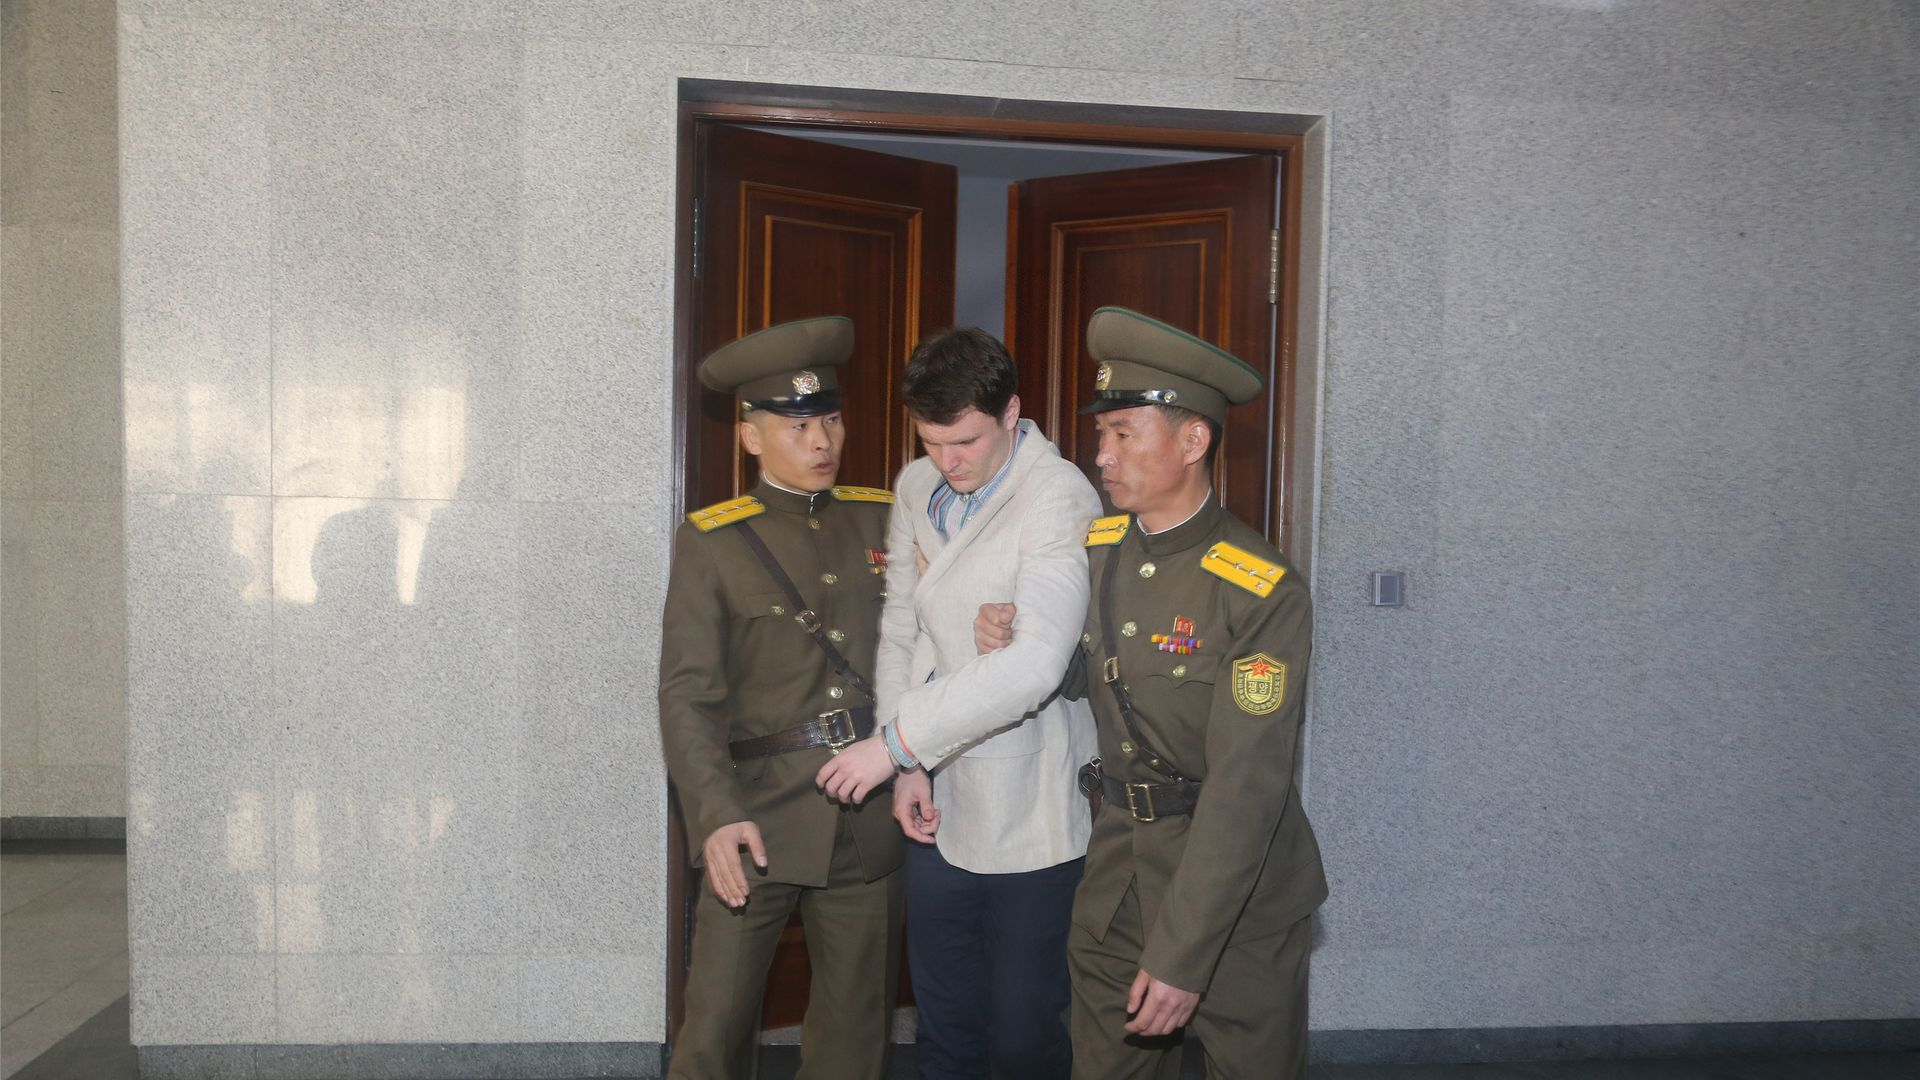 In this image, Otto Wambier is led through a doorway by two North Korean guards.